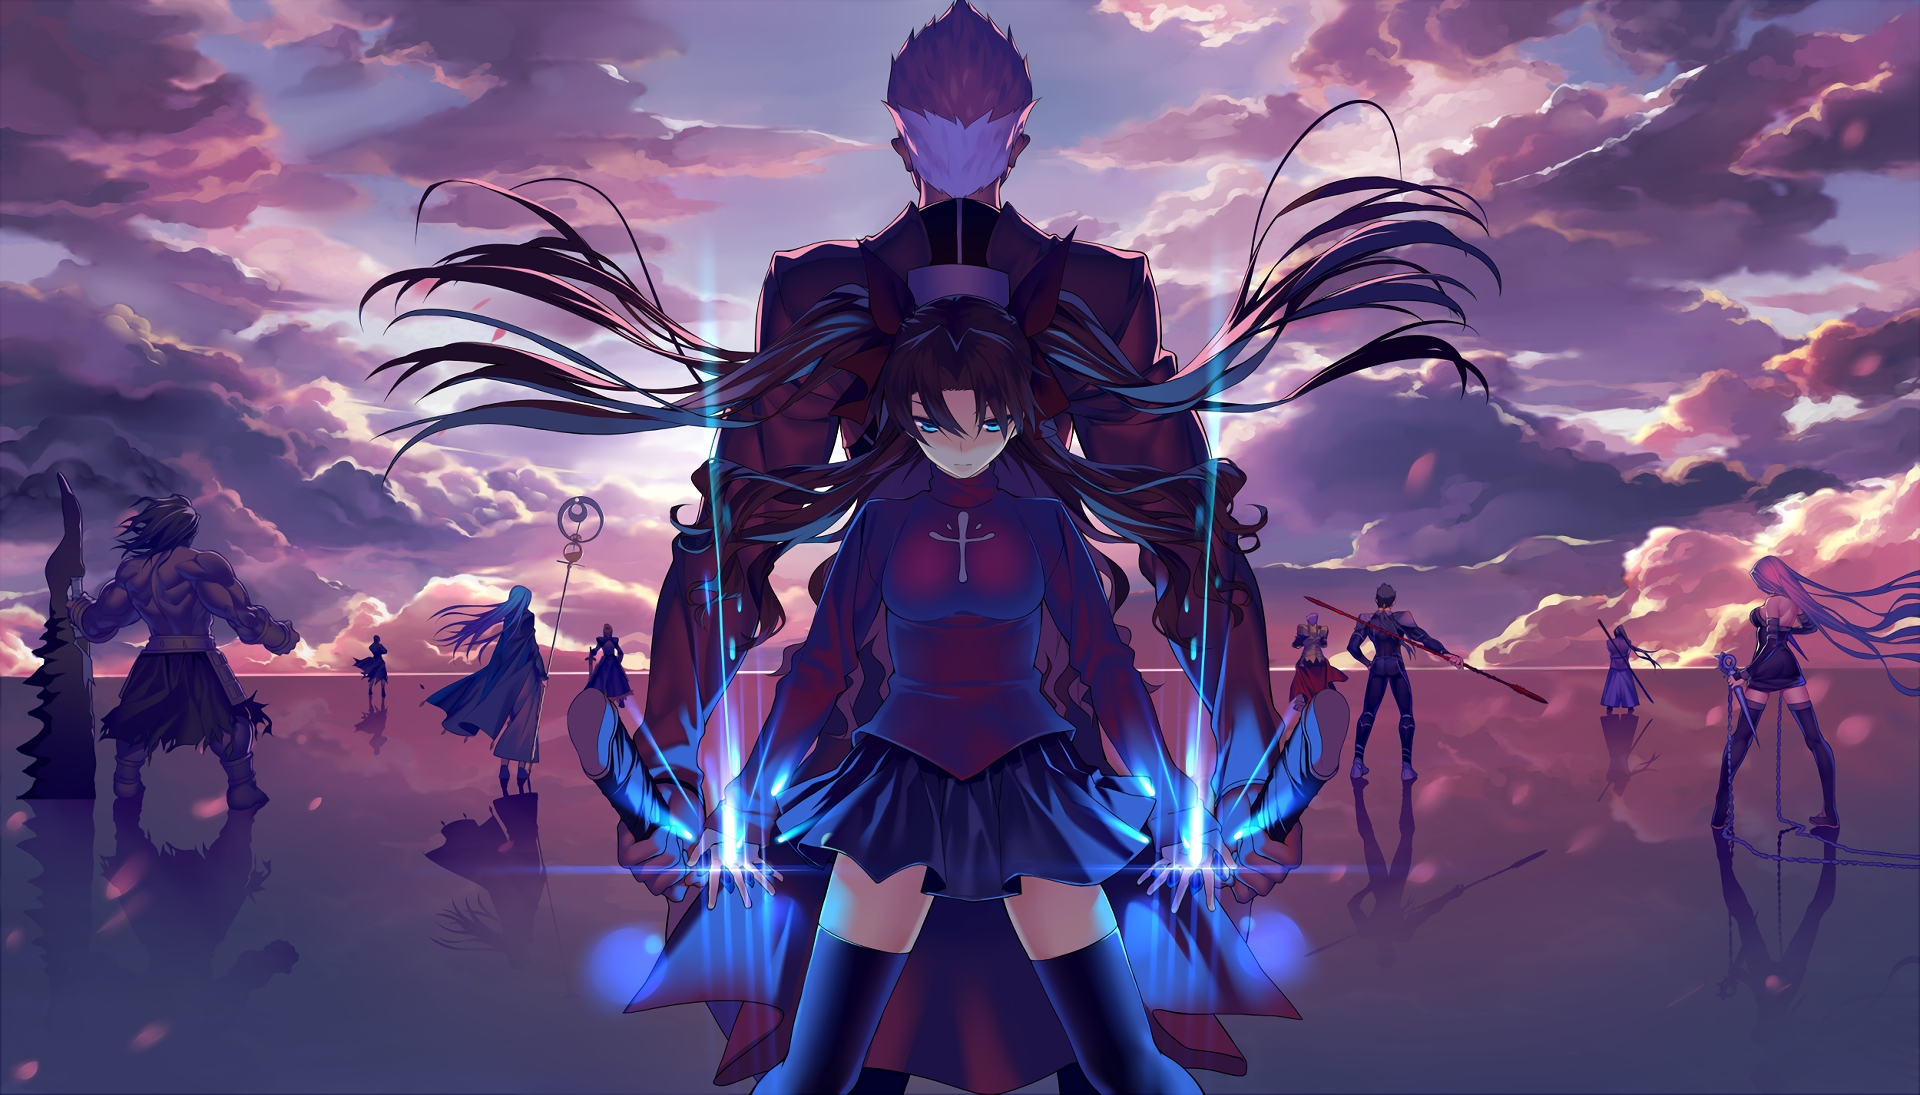 146 archer (fate/stay night) fonds d'écran hd | arrière-plans